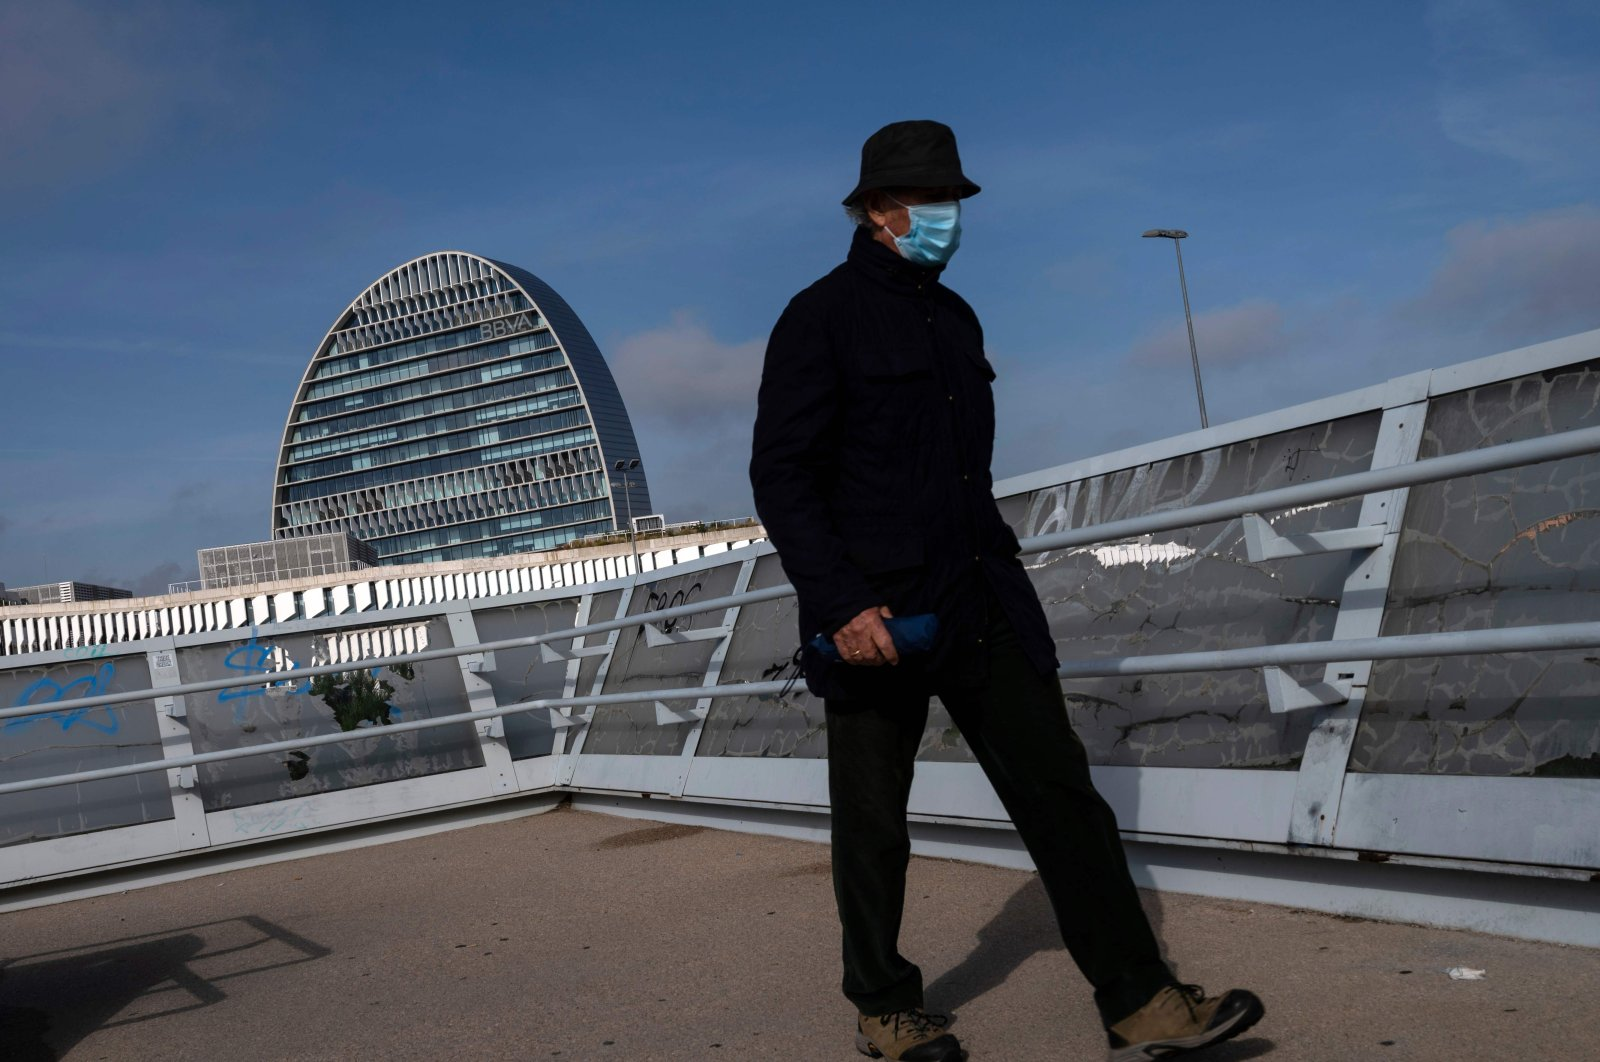 A man wearing a mask walks with La Vela (The Sail) building in the background, housing the head office of Spanish bank BBVA (Bilbao Vizcaya Argentaria Bank) in Madrid, Nov. 16, 2020. (AFP Photo)